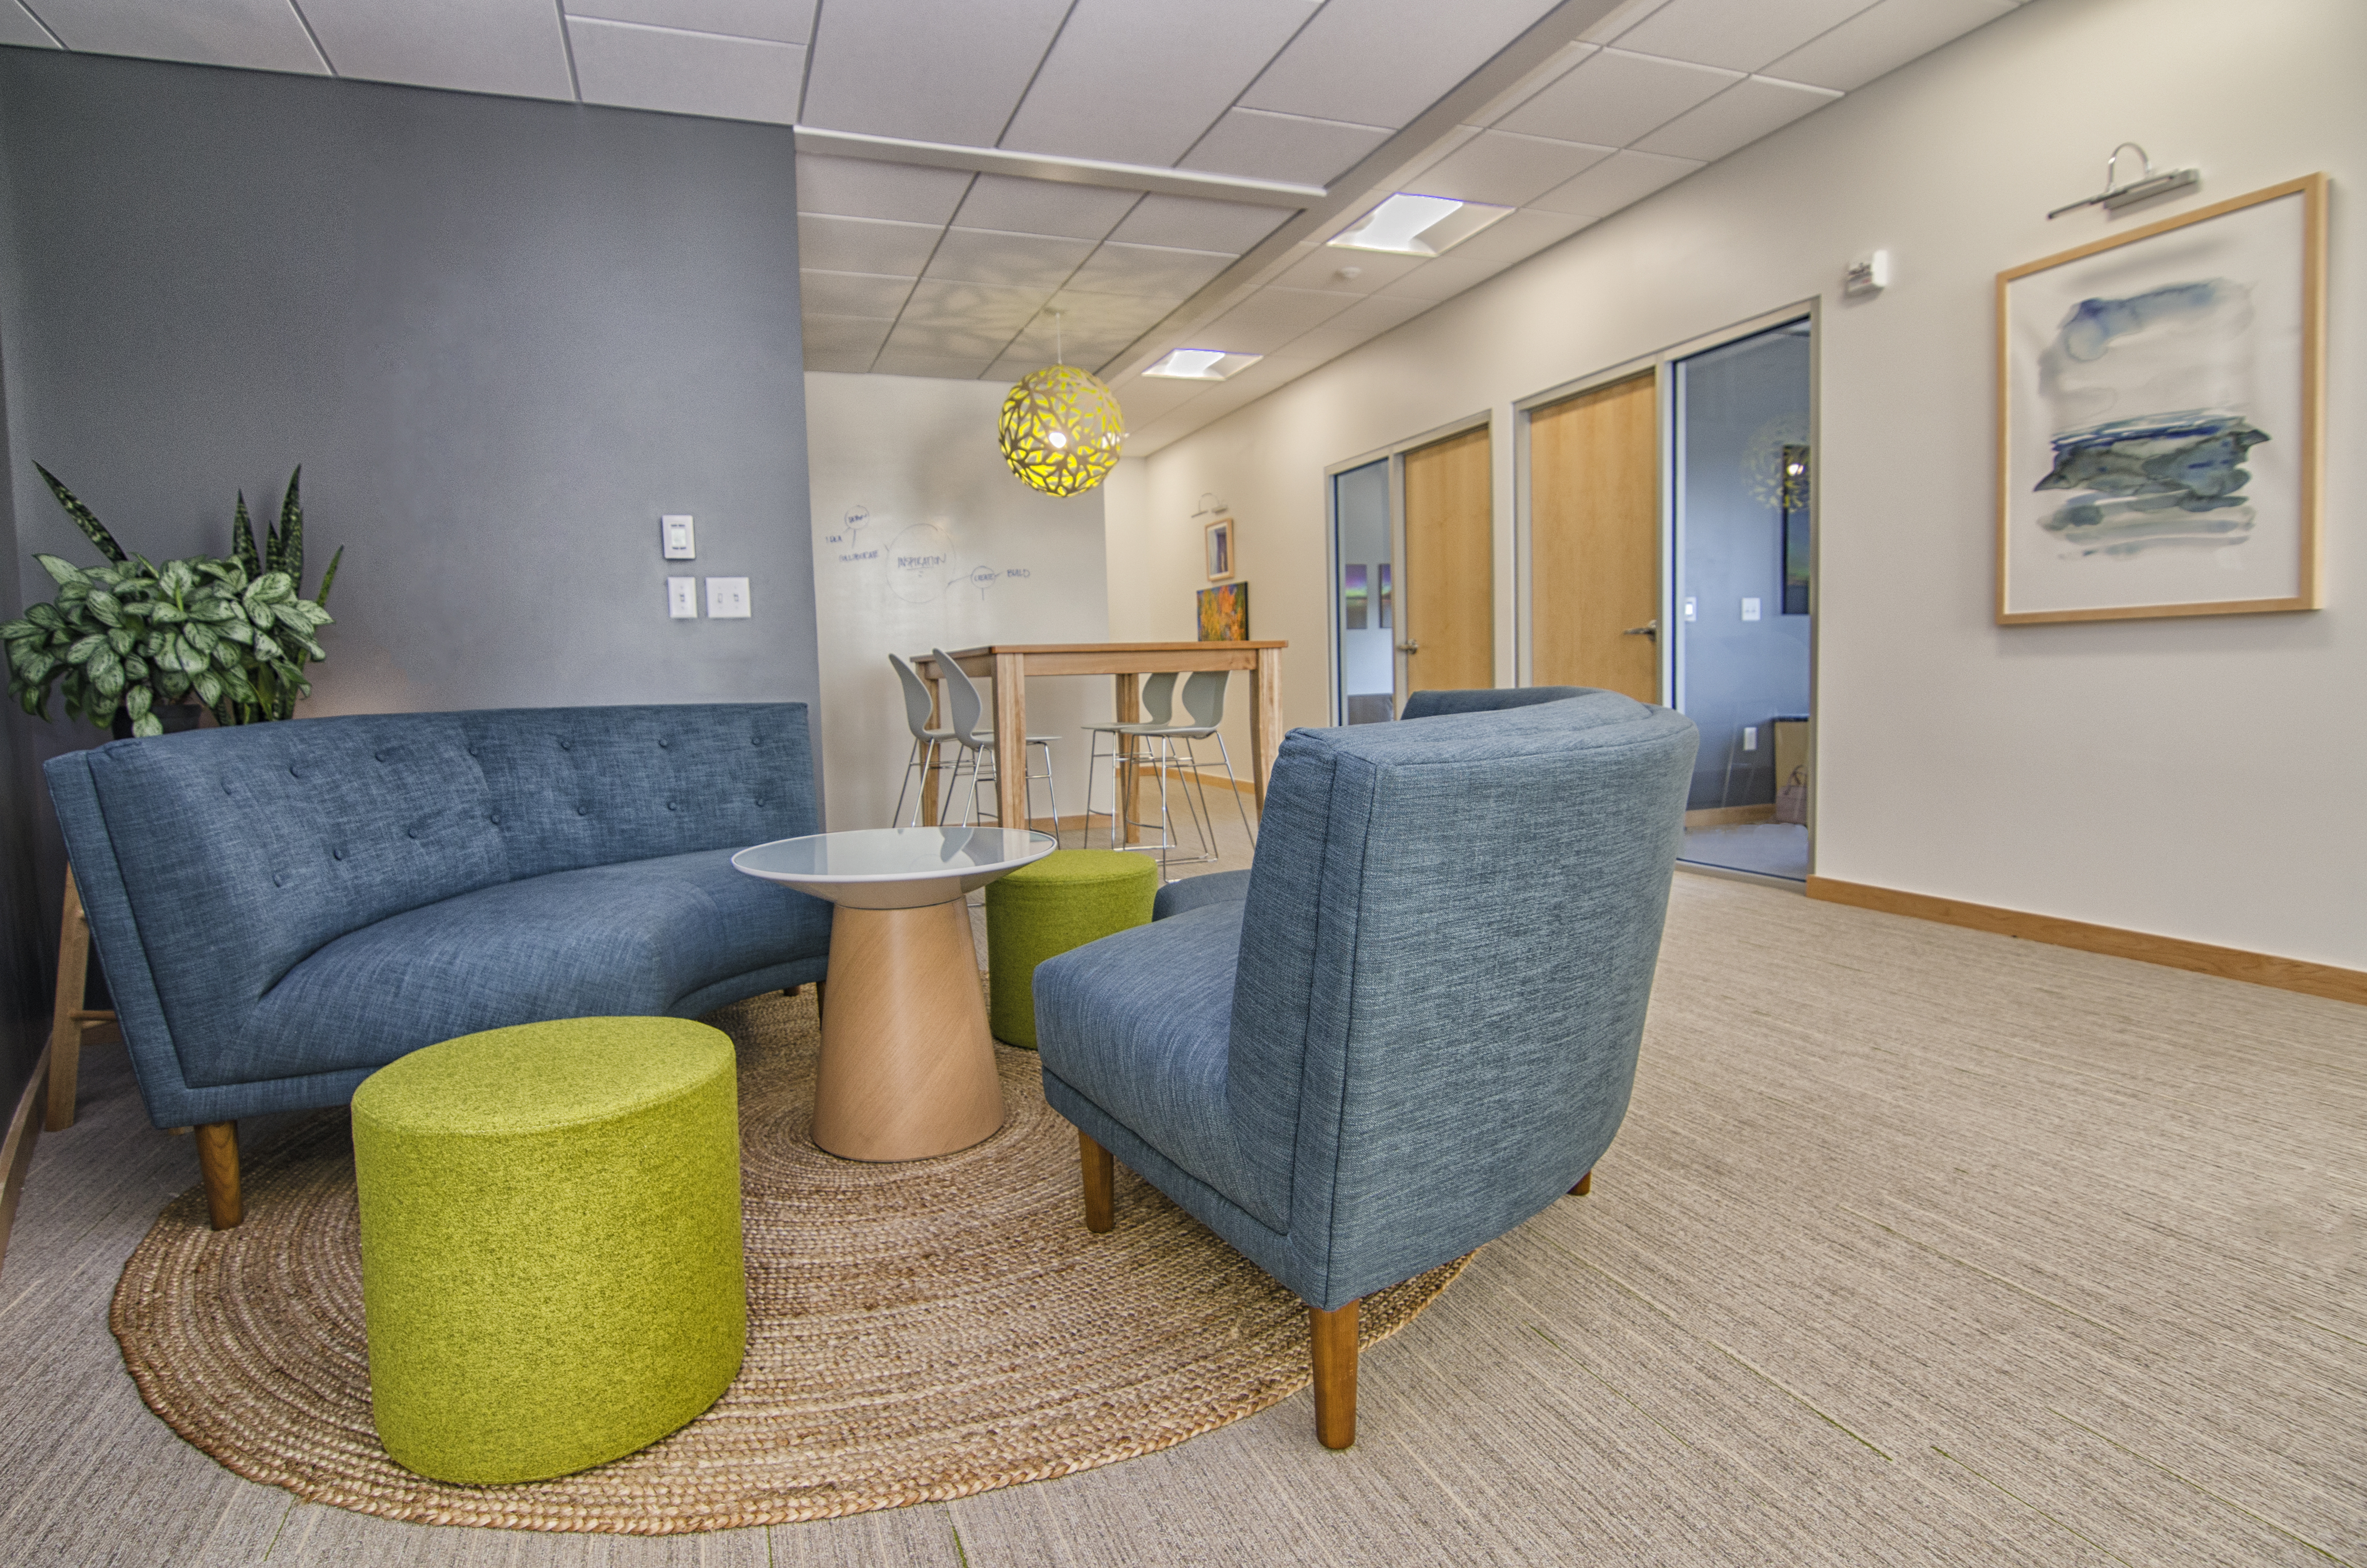 ... Area To Be Open And Collaborative While Also Adding Privacy To The  Executive Offices Behind The New Wall, Which Also Functions As A Dry Erase  Surface.